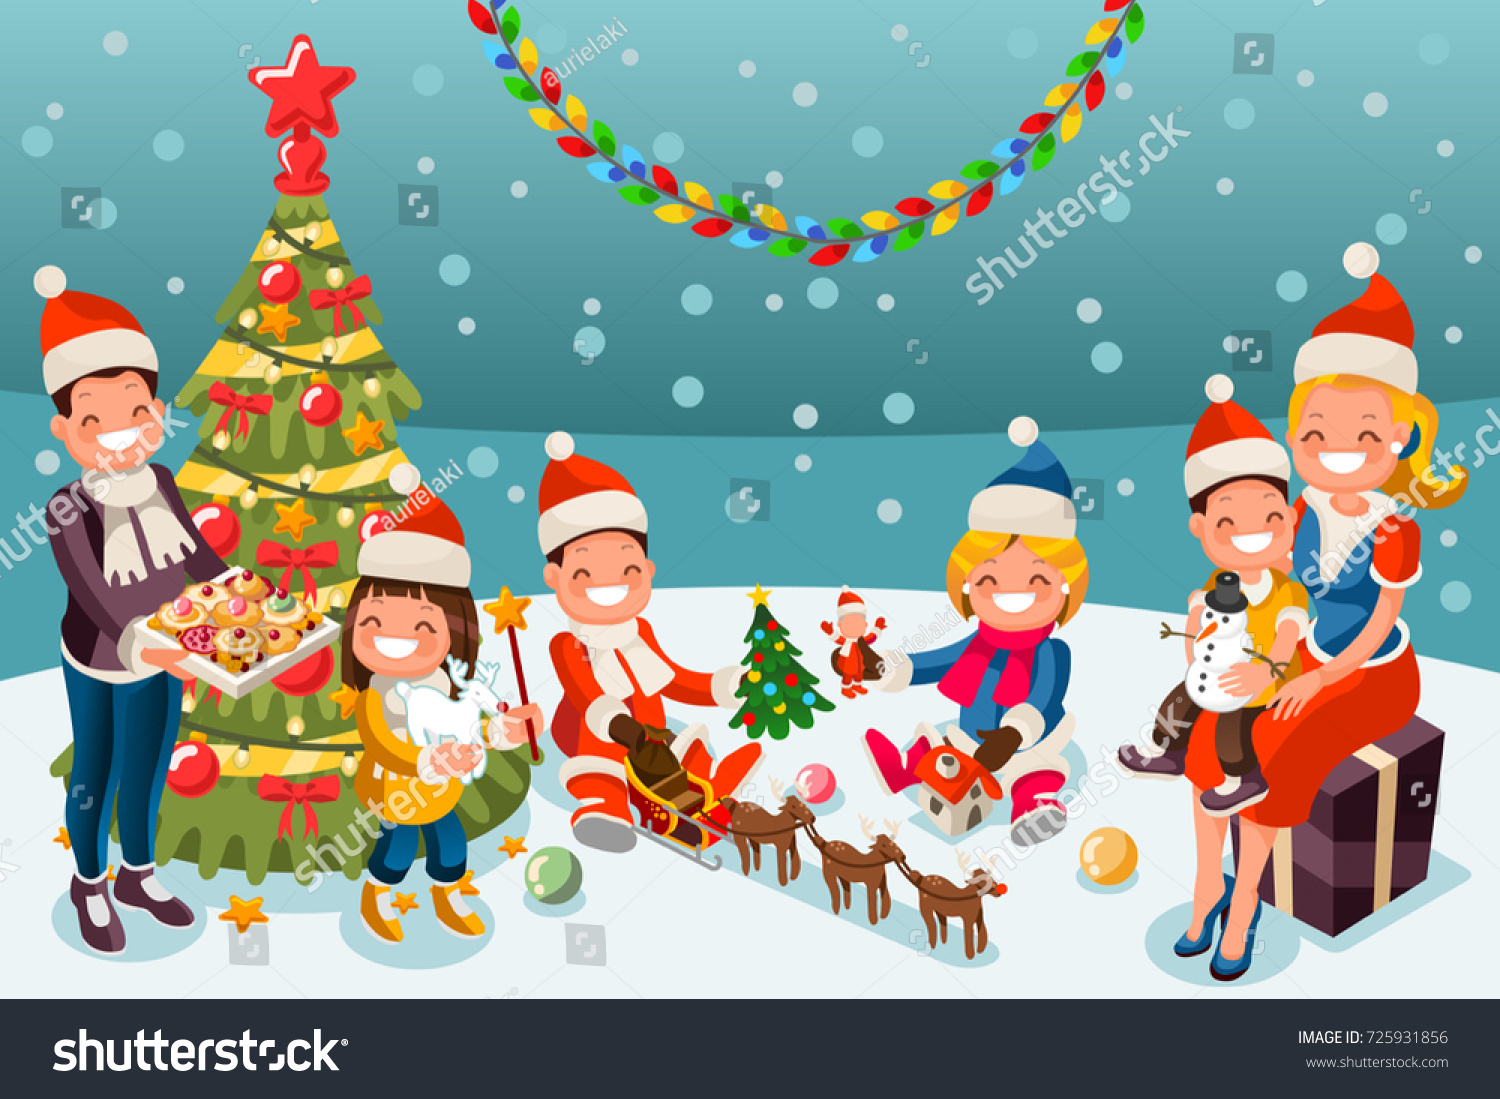 Winter Kids Christmas Party Night Family Stock Vector (Royalty Free ...